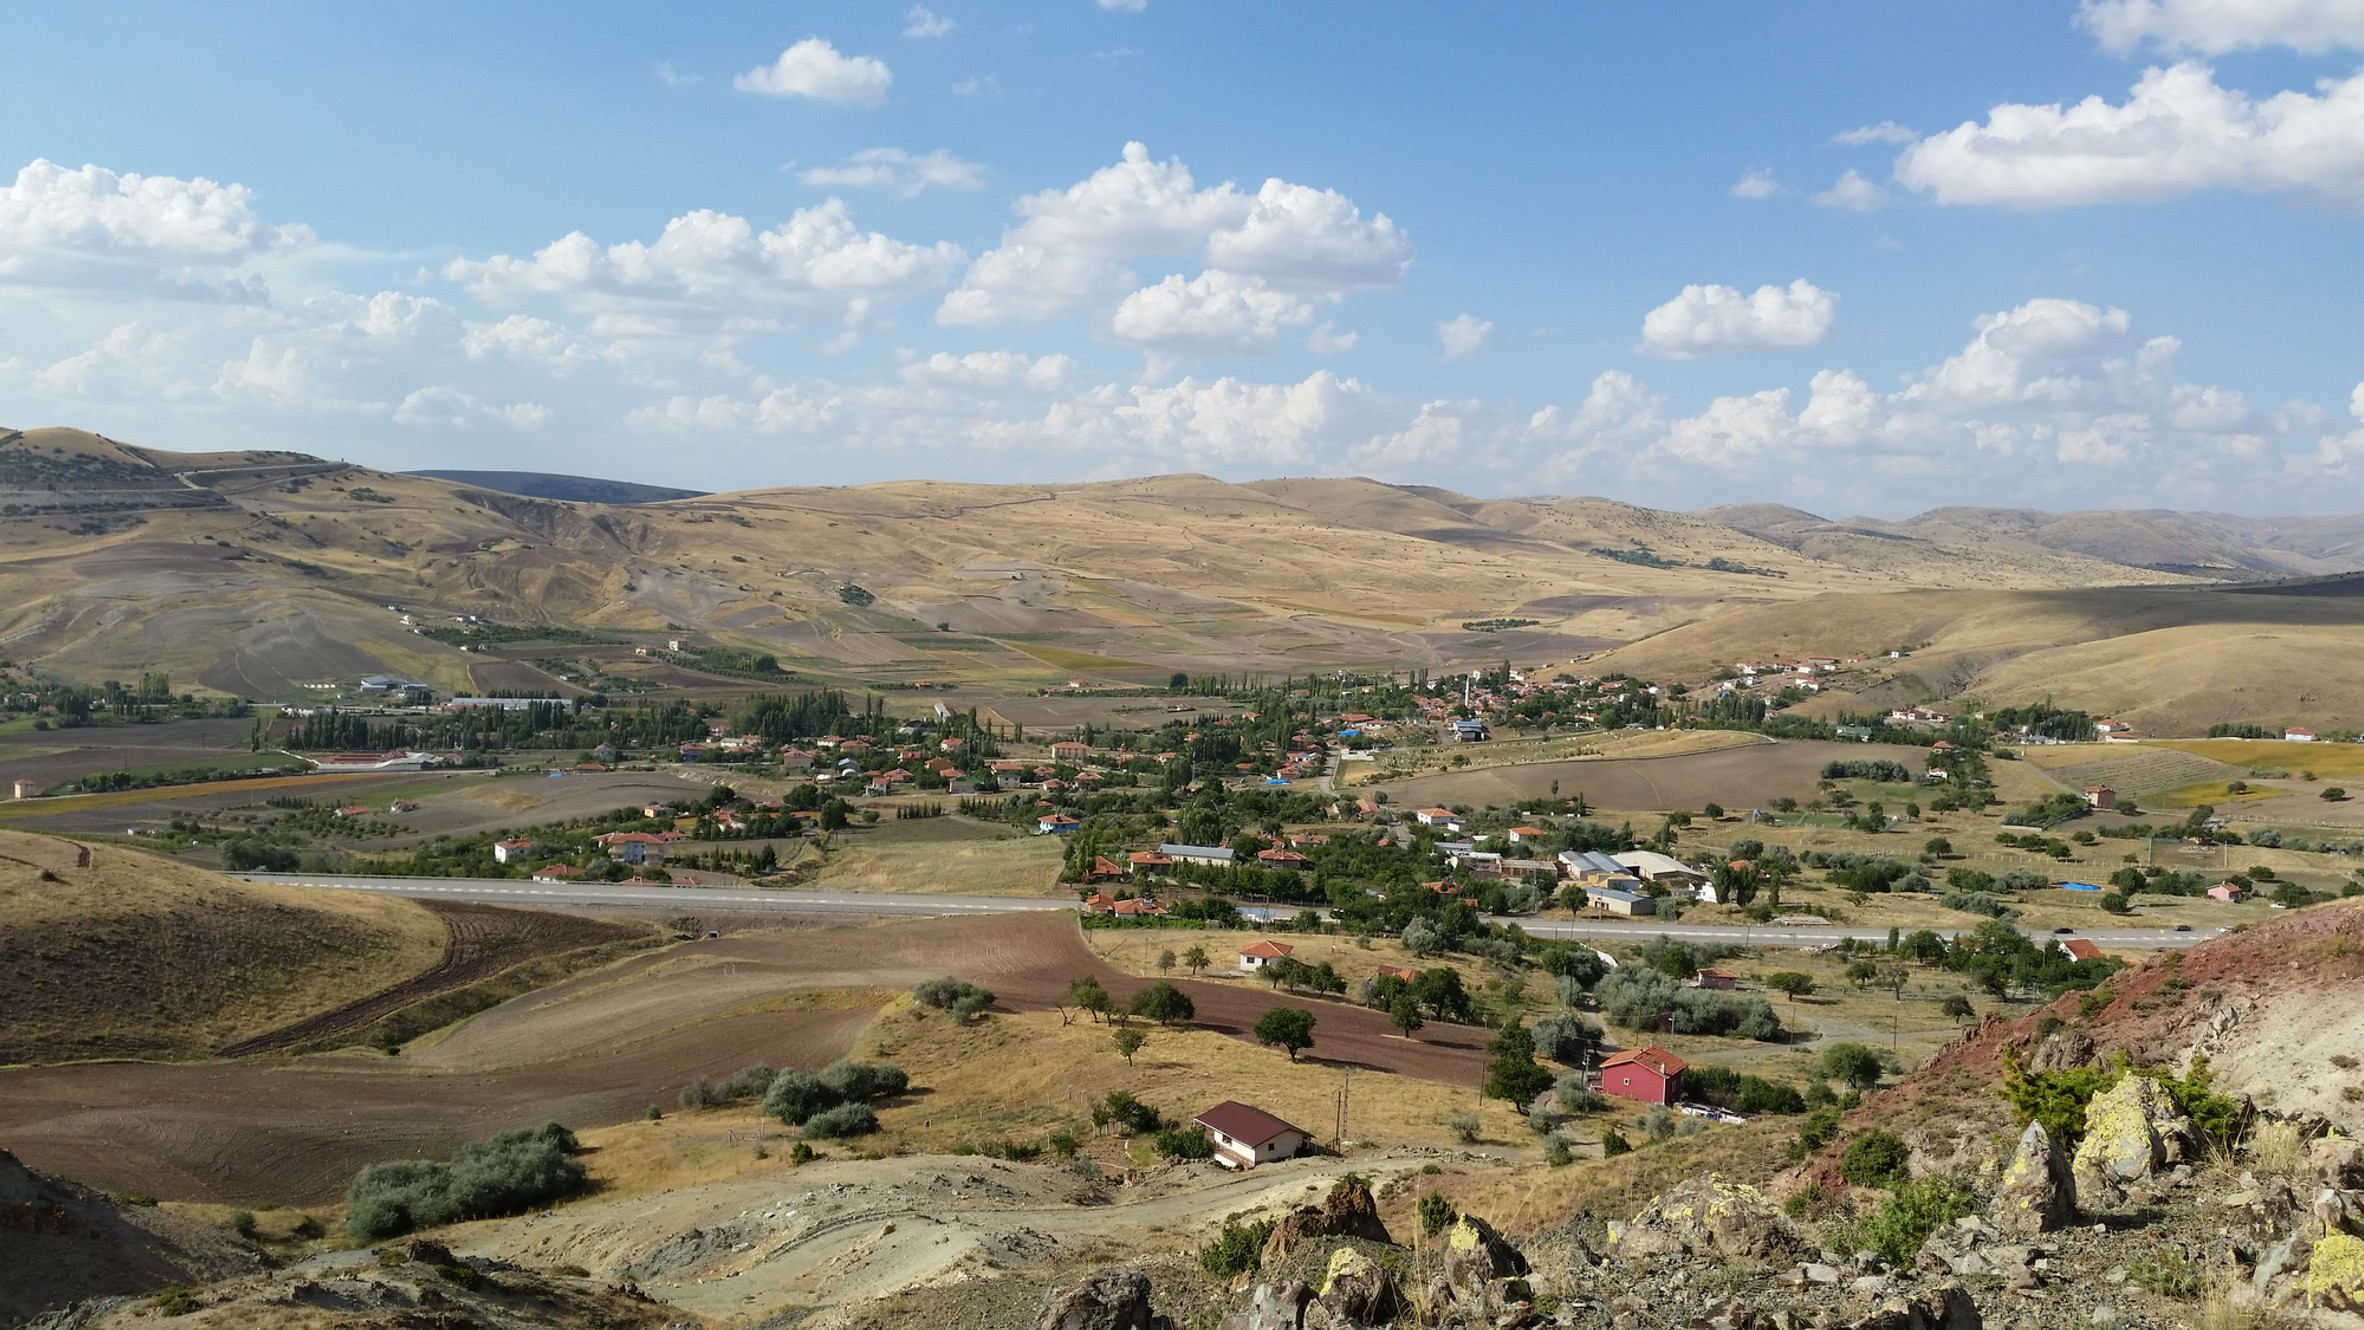 A typical central Anatolian village